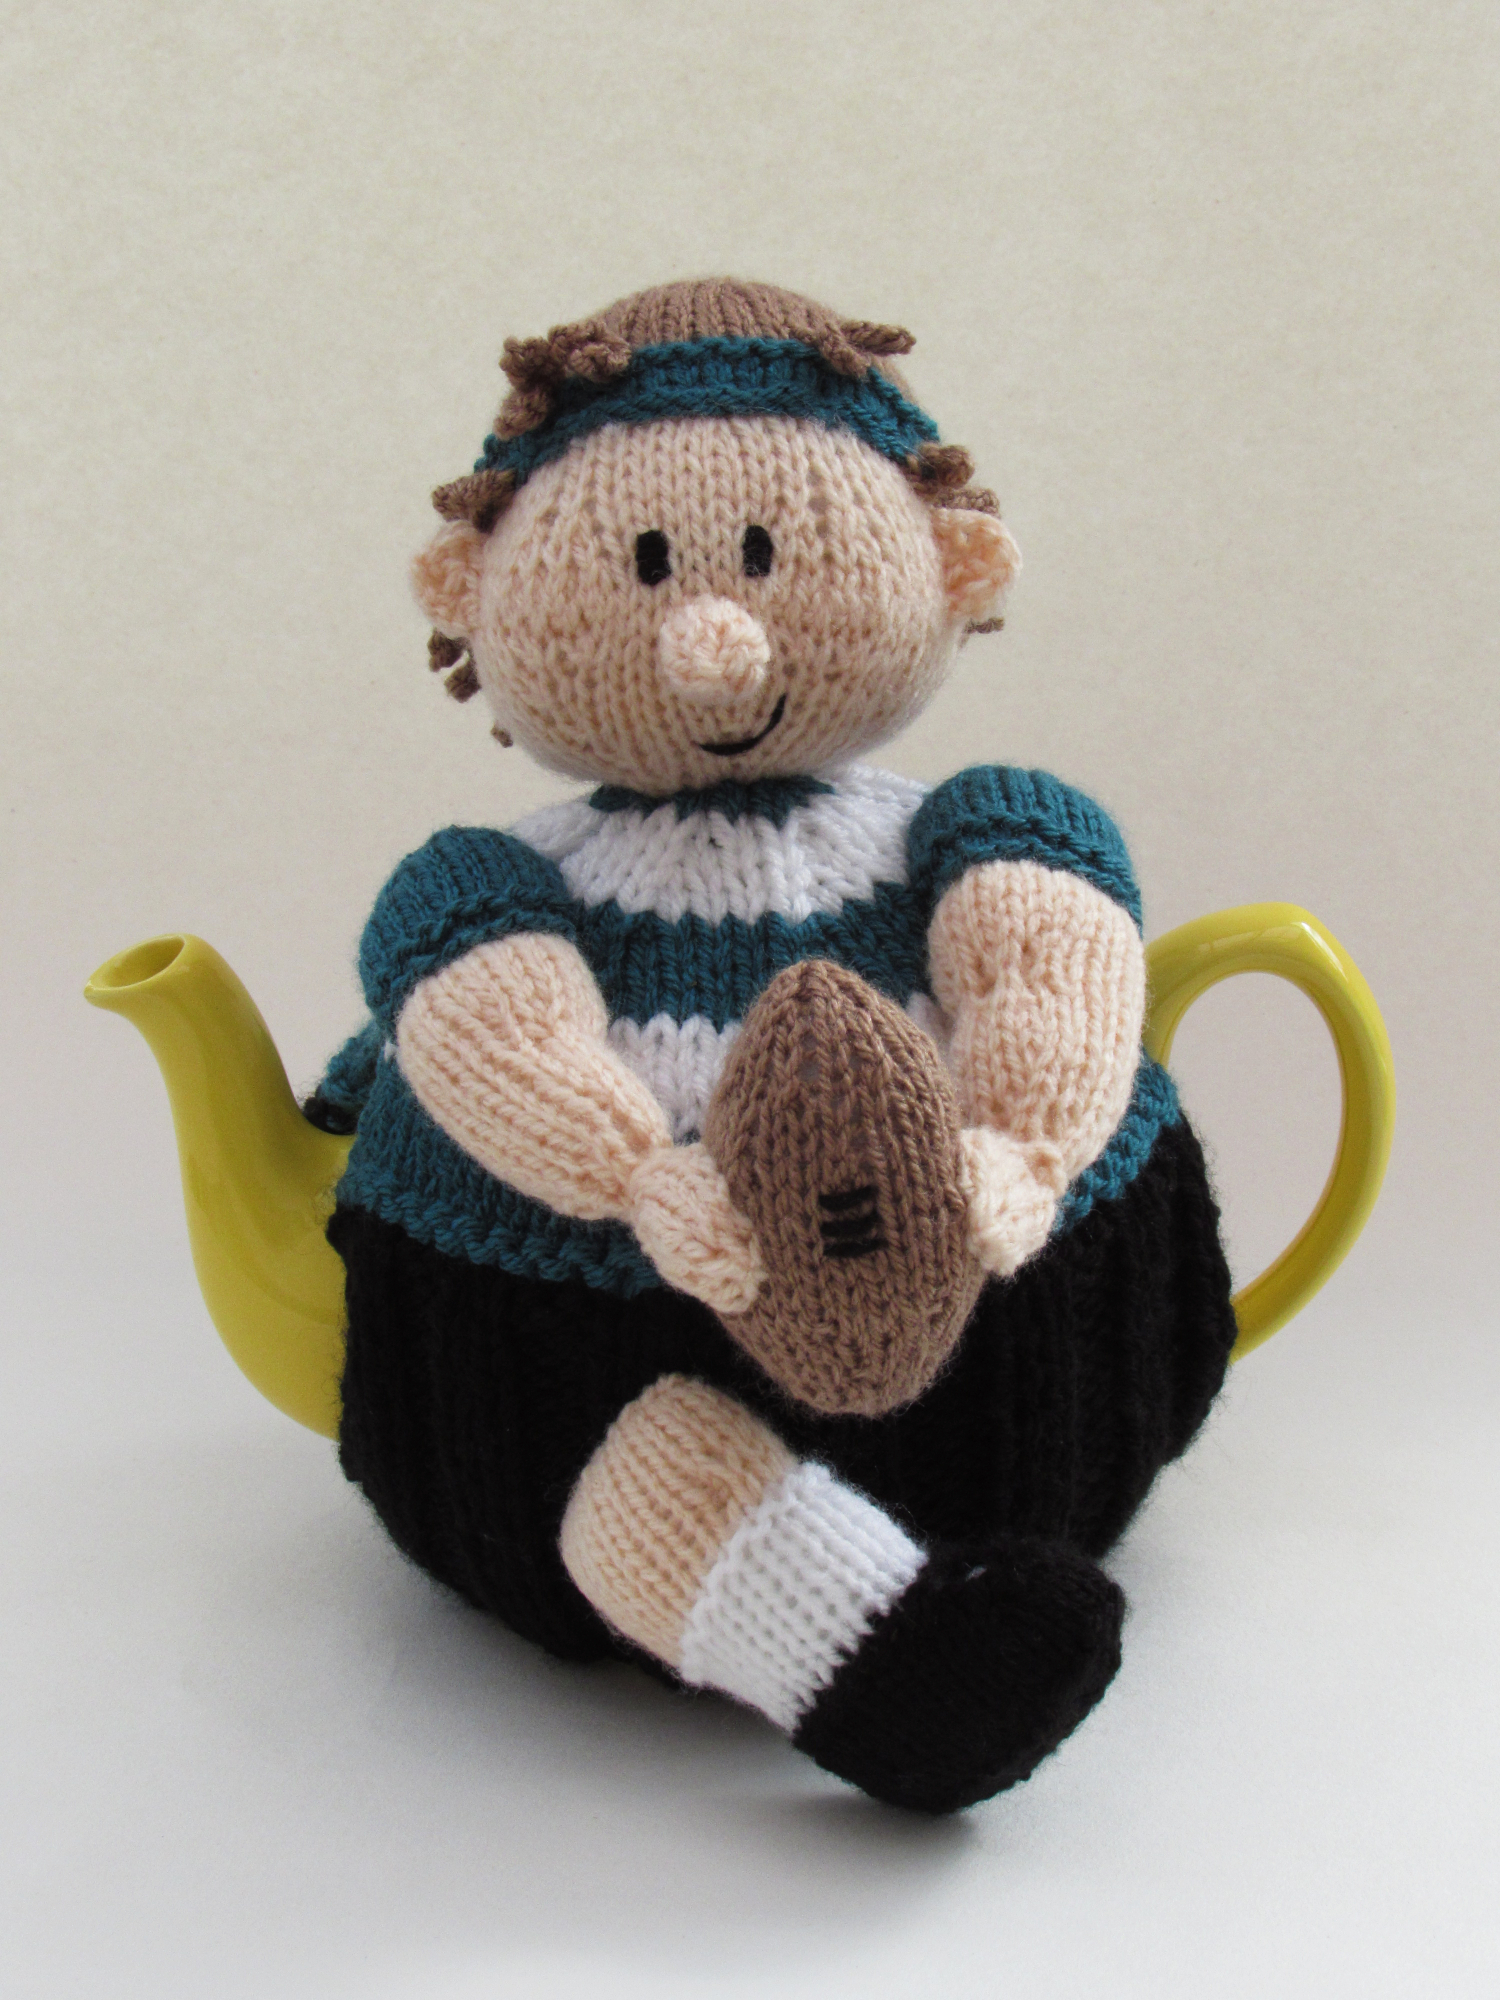 Tea Cosy Knitting Patterns Easy Tea Cosy Knitting Patterns From Tea Cosy Folk Learn How To Knit Our